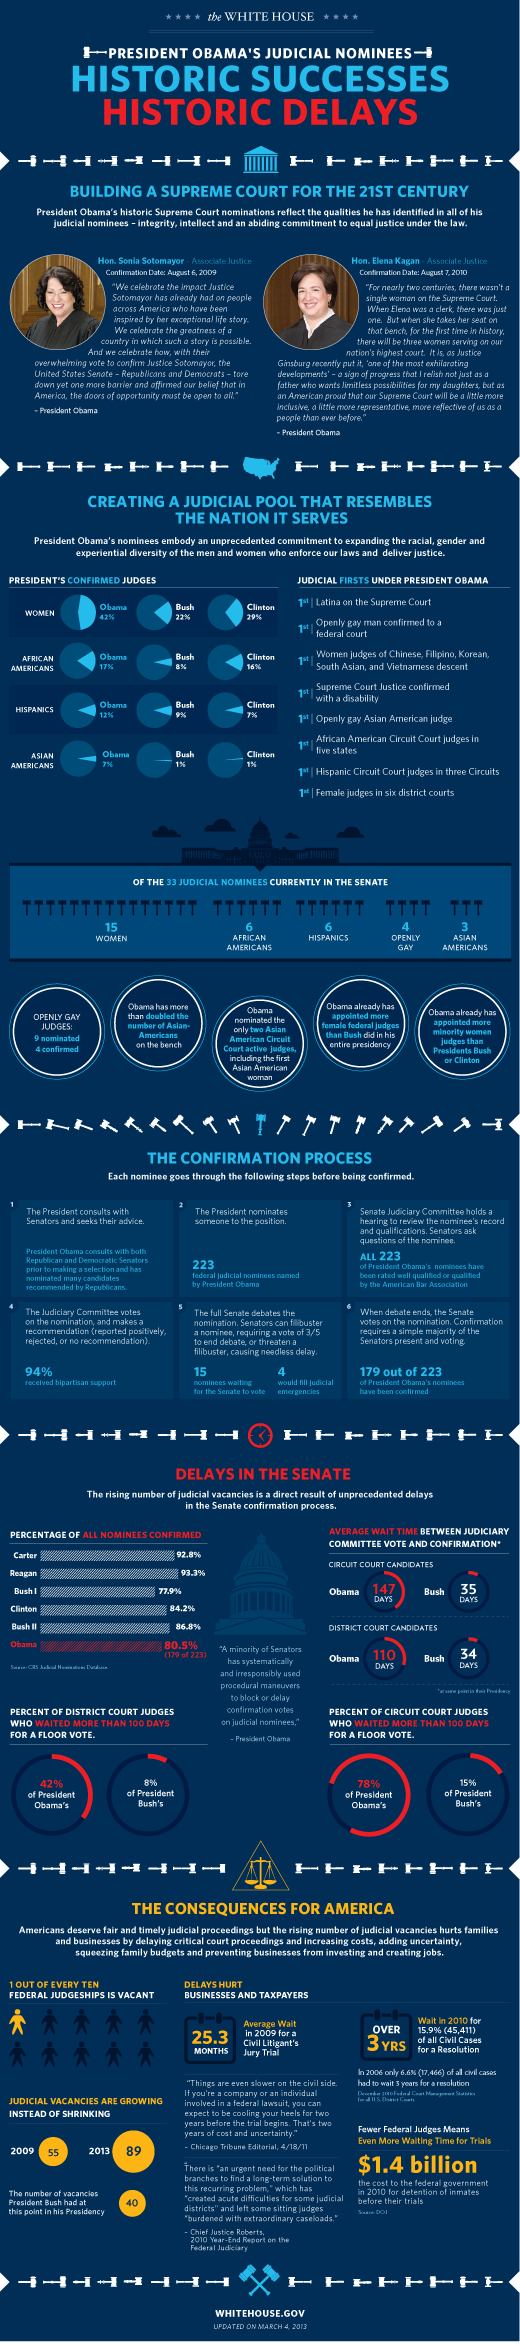 wh_judicial_2013_infographic_blog